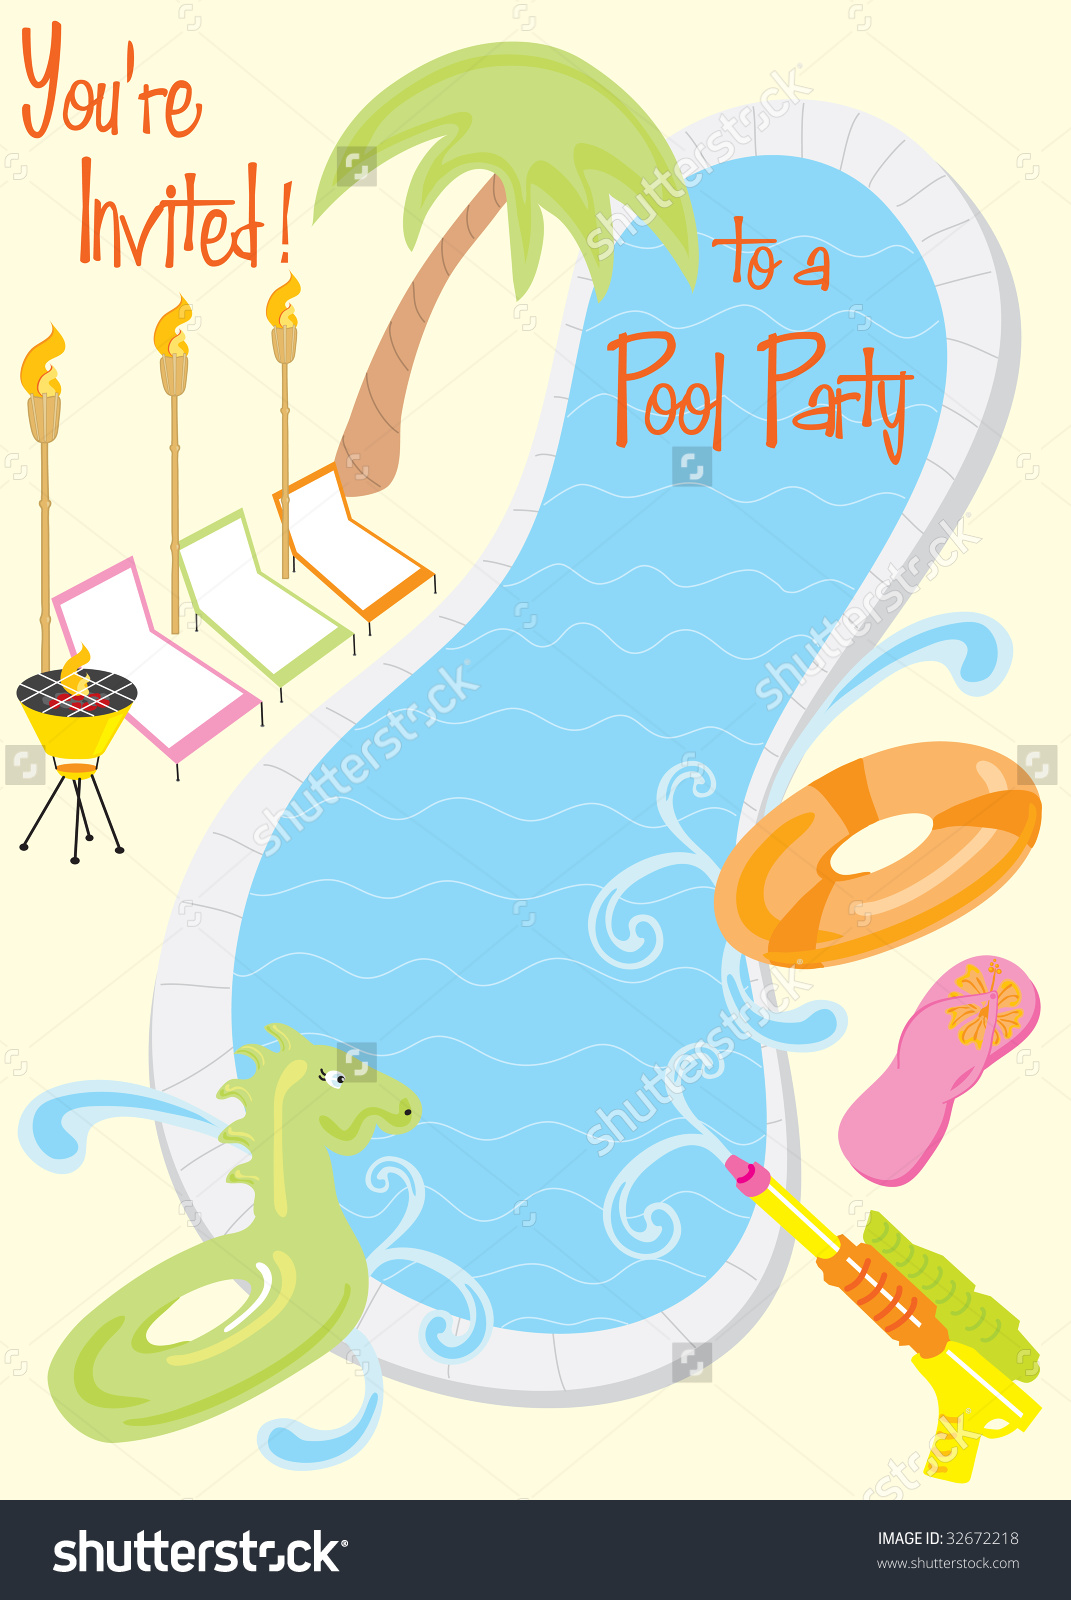 Blue Water clipart pool party Backyard pool clipart collection Party